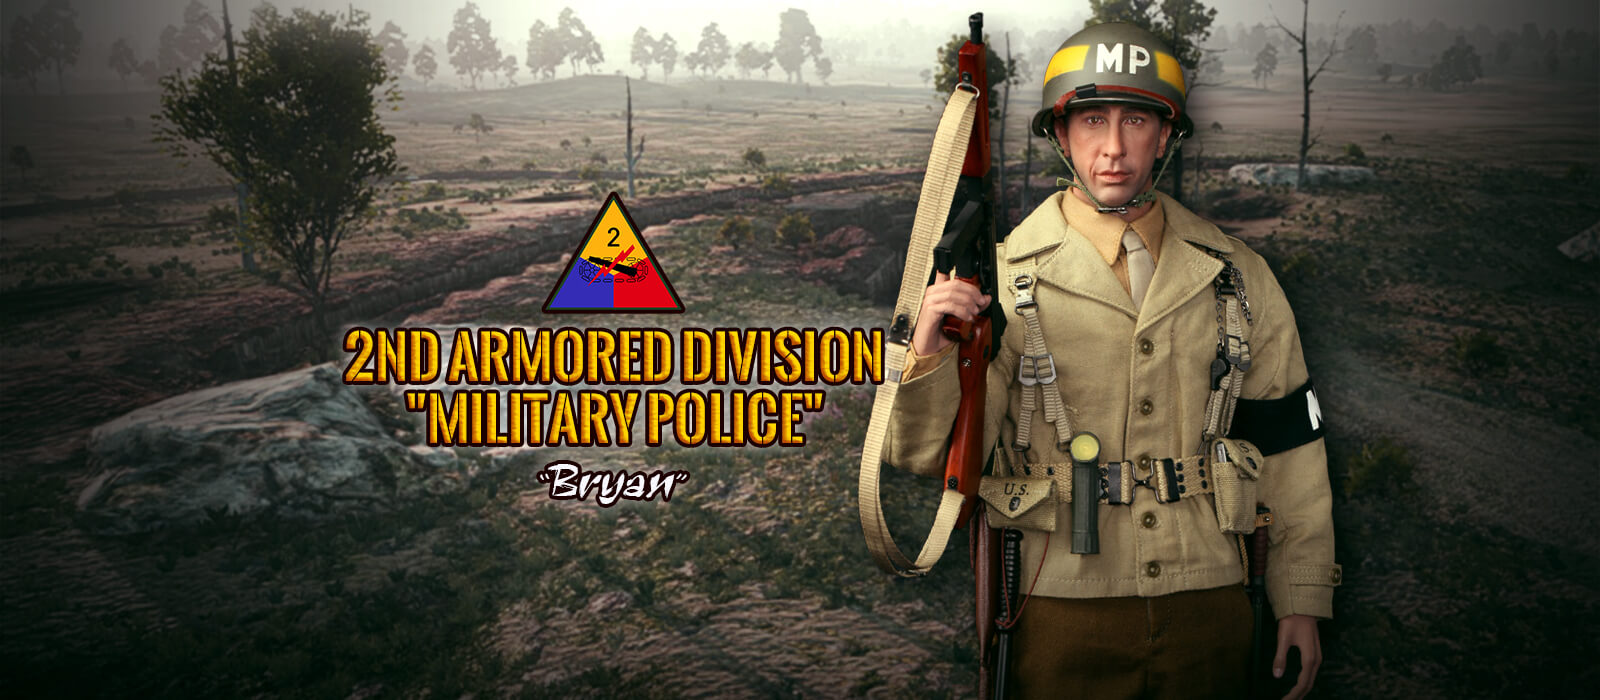 A80116 2ND ARMORED DIVISION MILITARY POLICE BRYAN